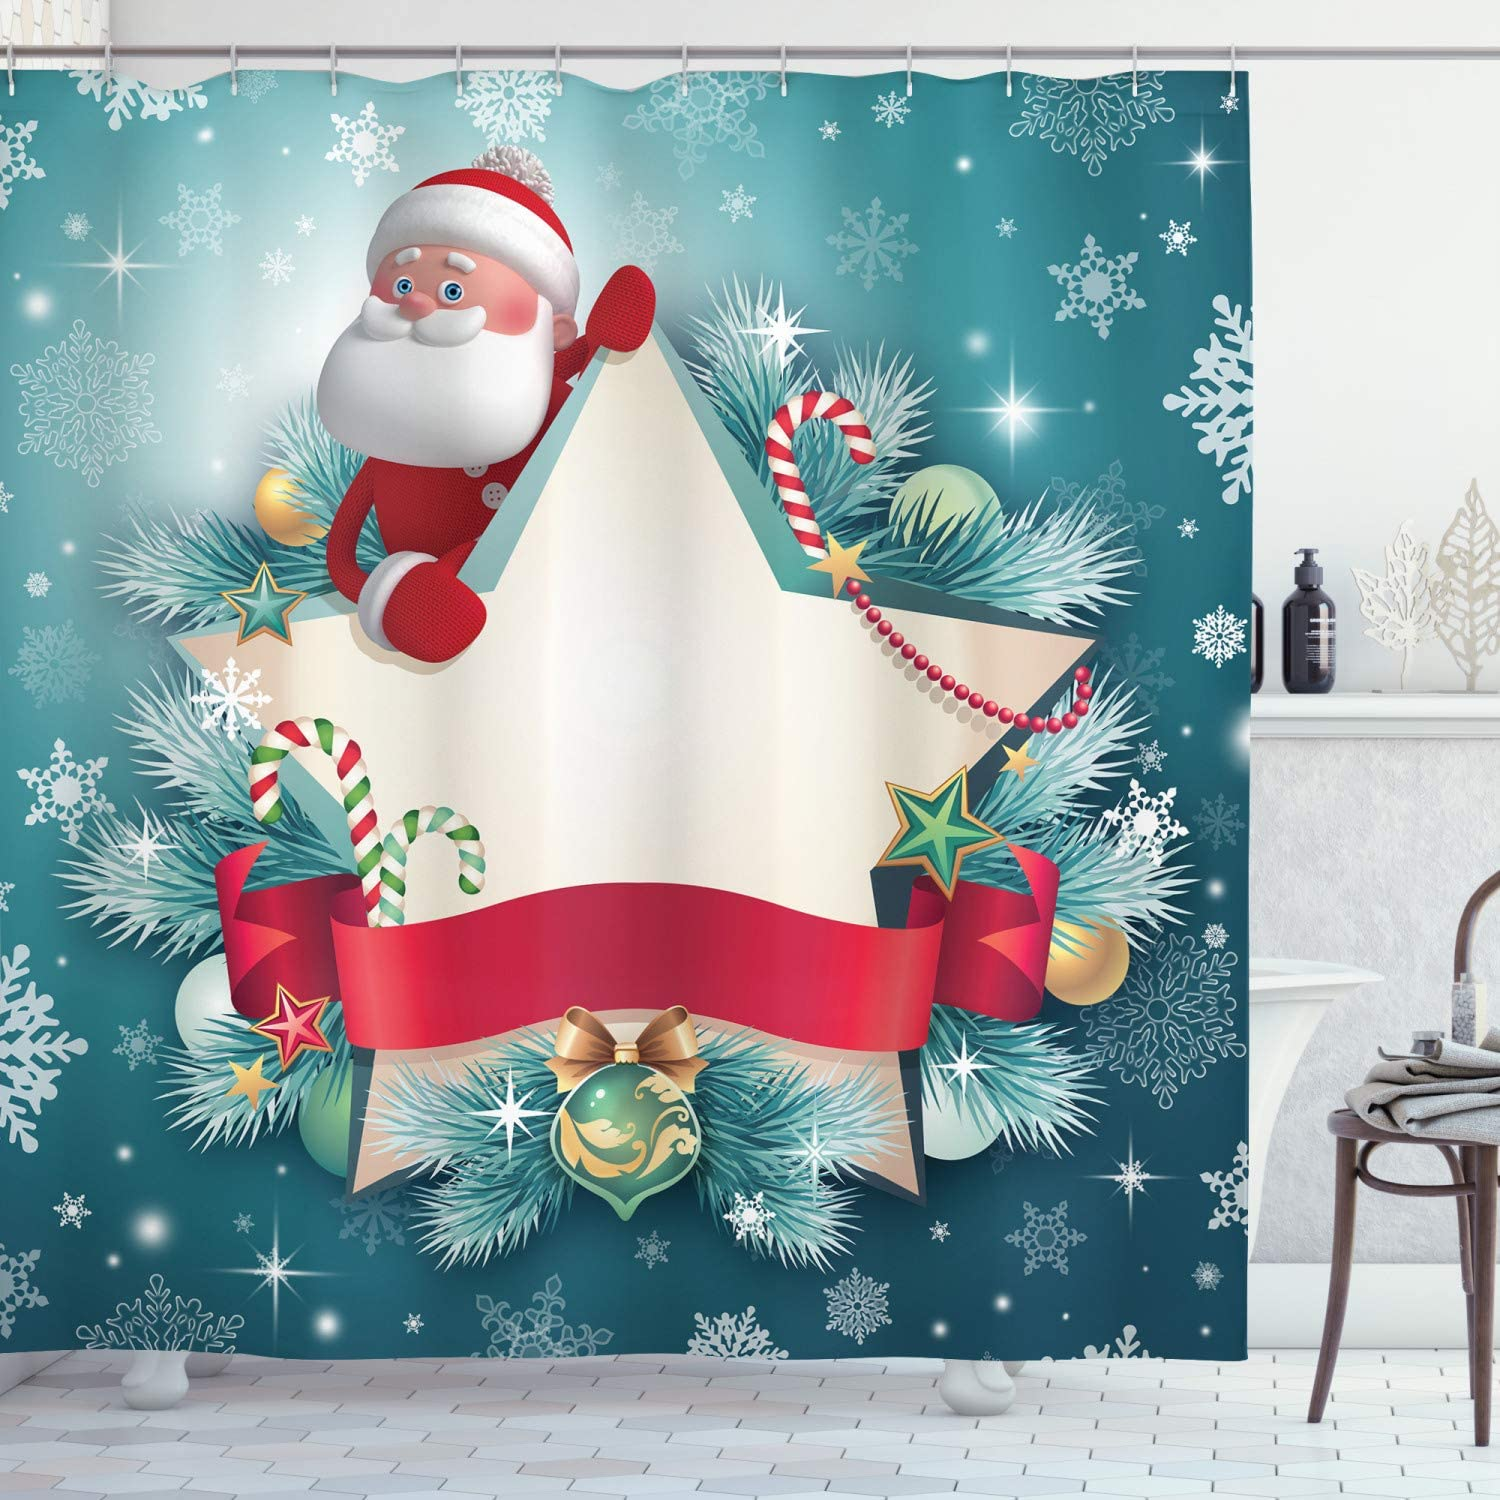 Christmas Shower Curtain Colorful Jolly Times Print for Bathroom